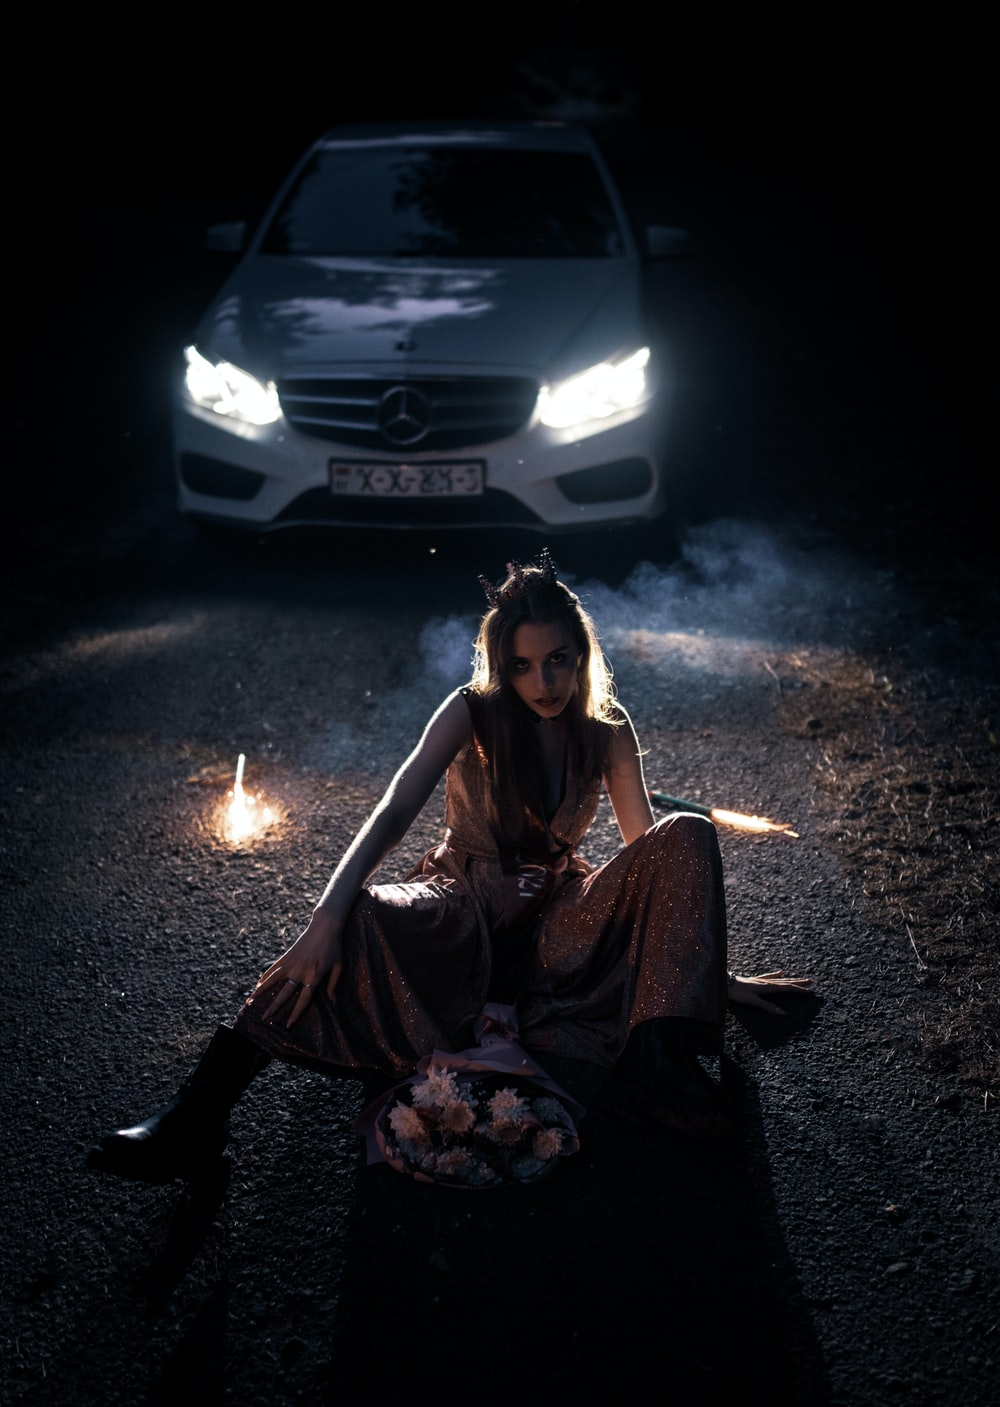 woman in brown long sleeve shirt sitting on ground beside white car during nighttime